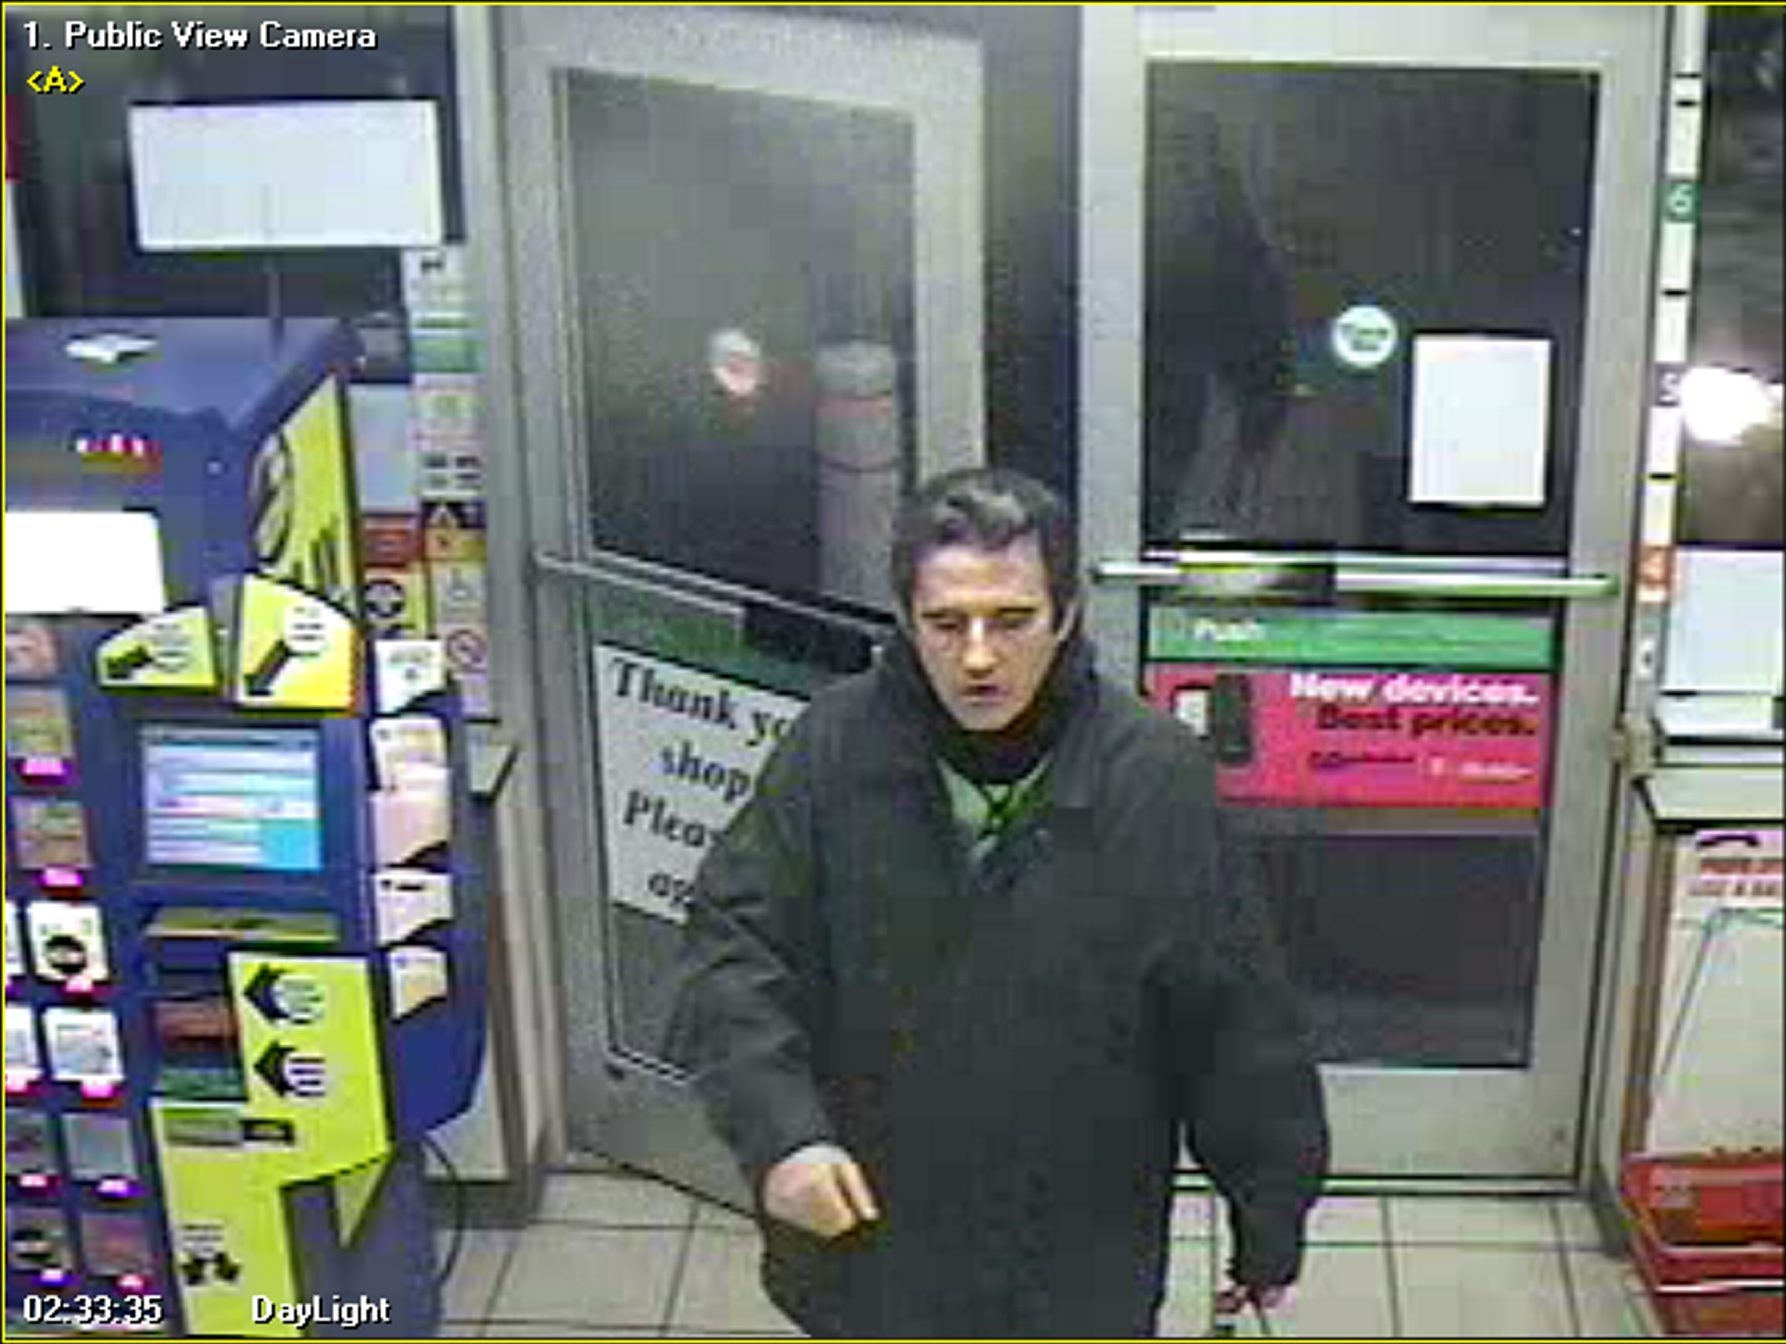 Niagara Falls police released this photo in hopes of identifying suspect.